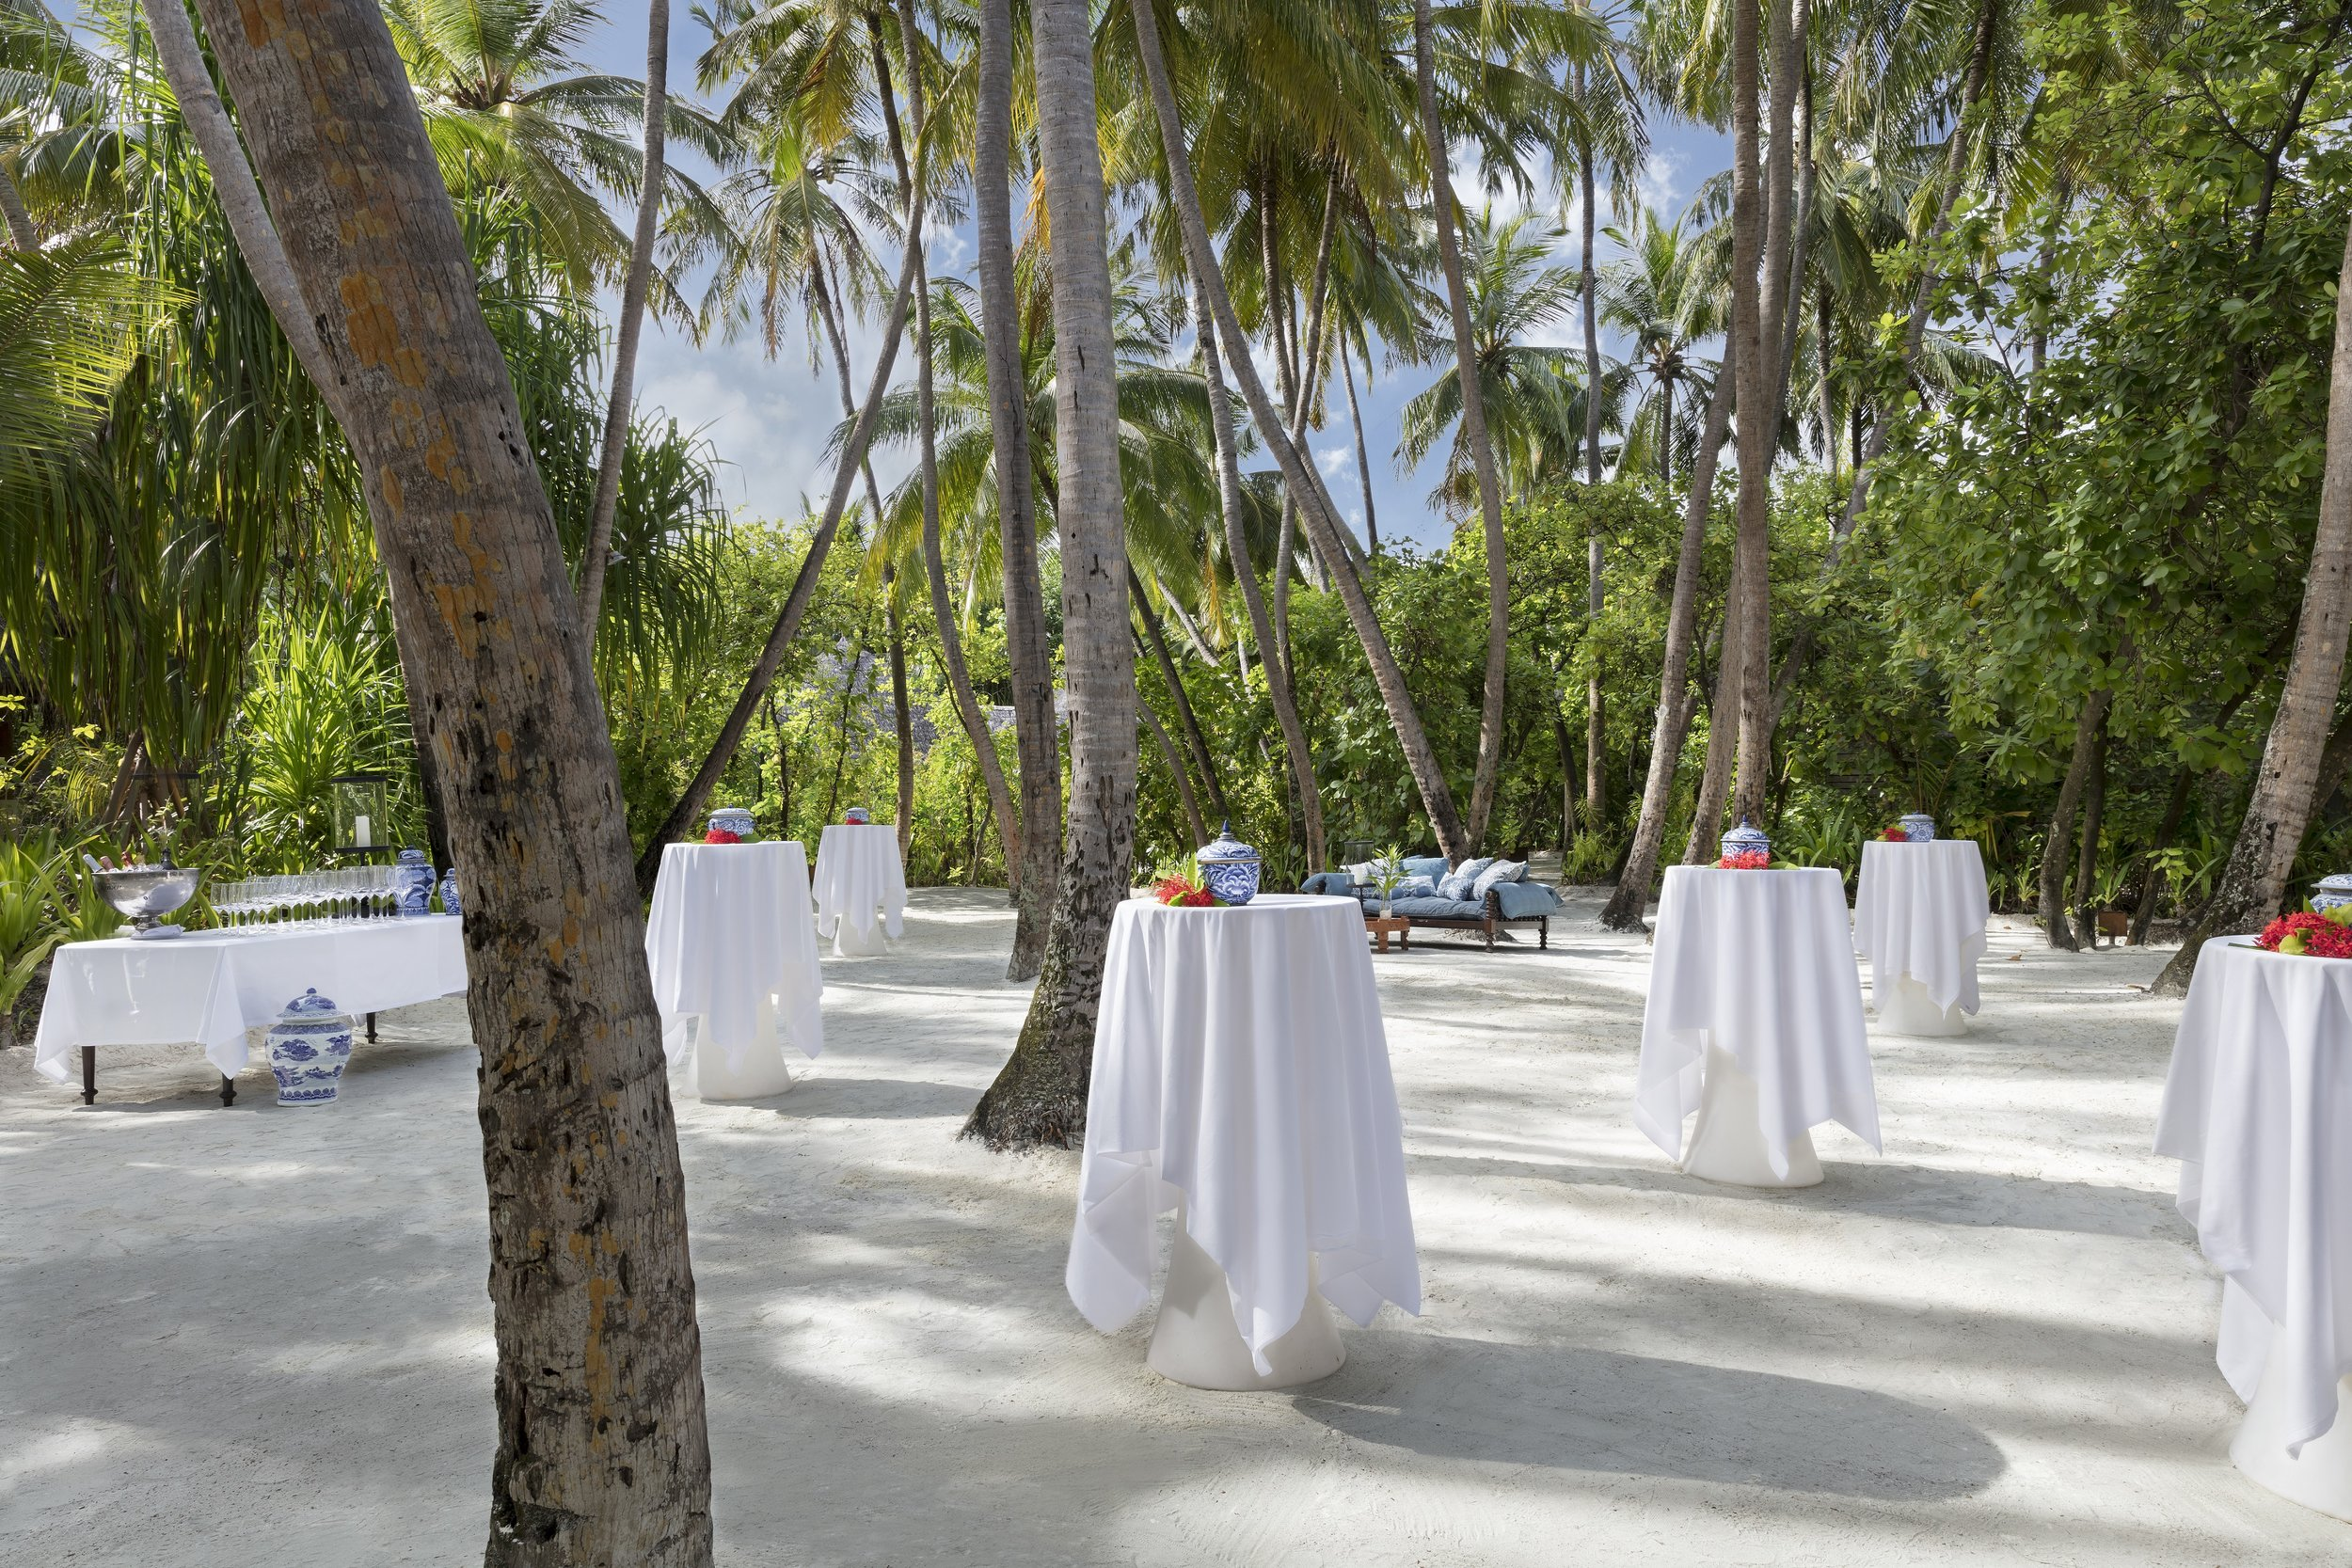 Naladhu_Private_Island_Coconut_Grove_Cocktail_Party.jpg